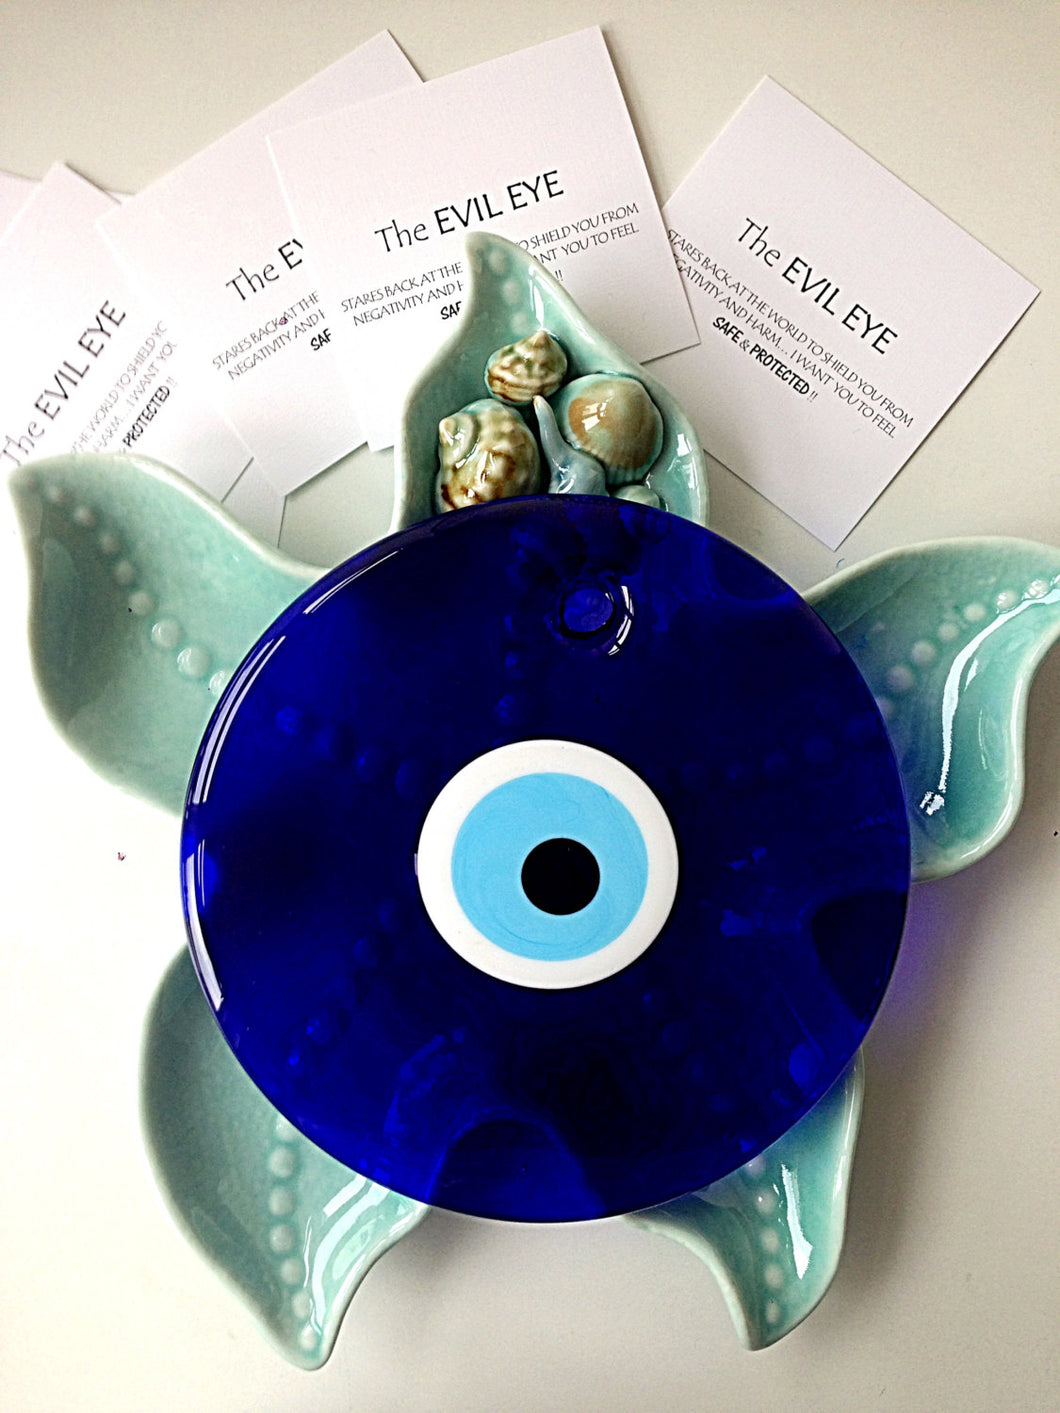 evil eye bead - 18cm - evil eye wall hanging - evil eye charm - large evil eye - Evileyefavor